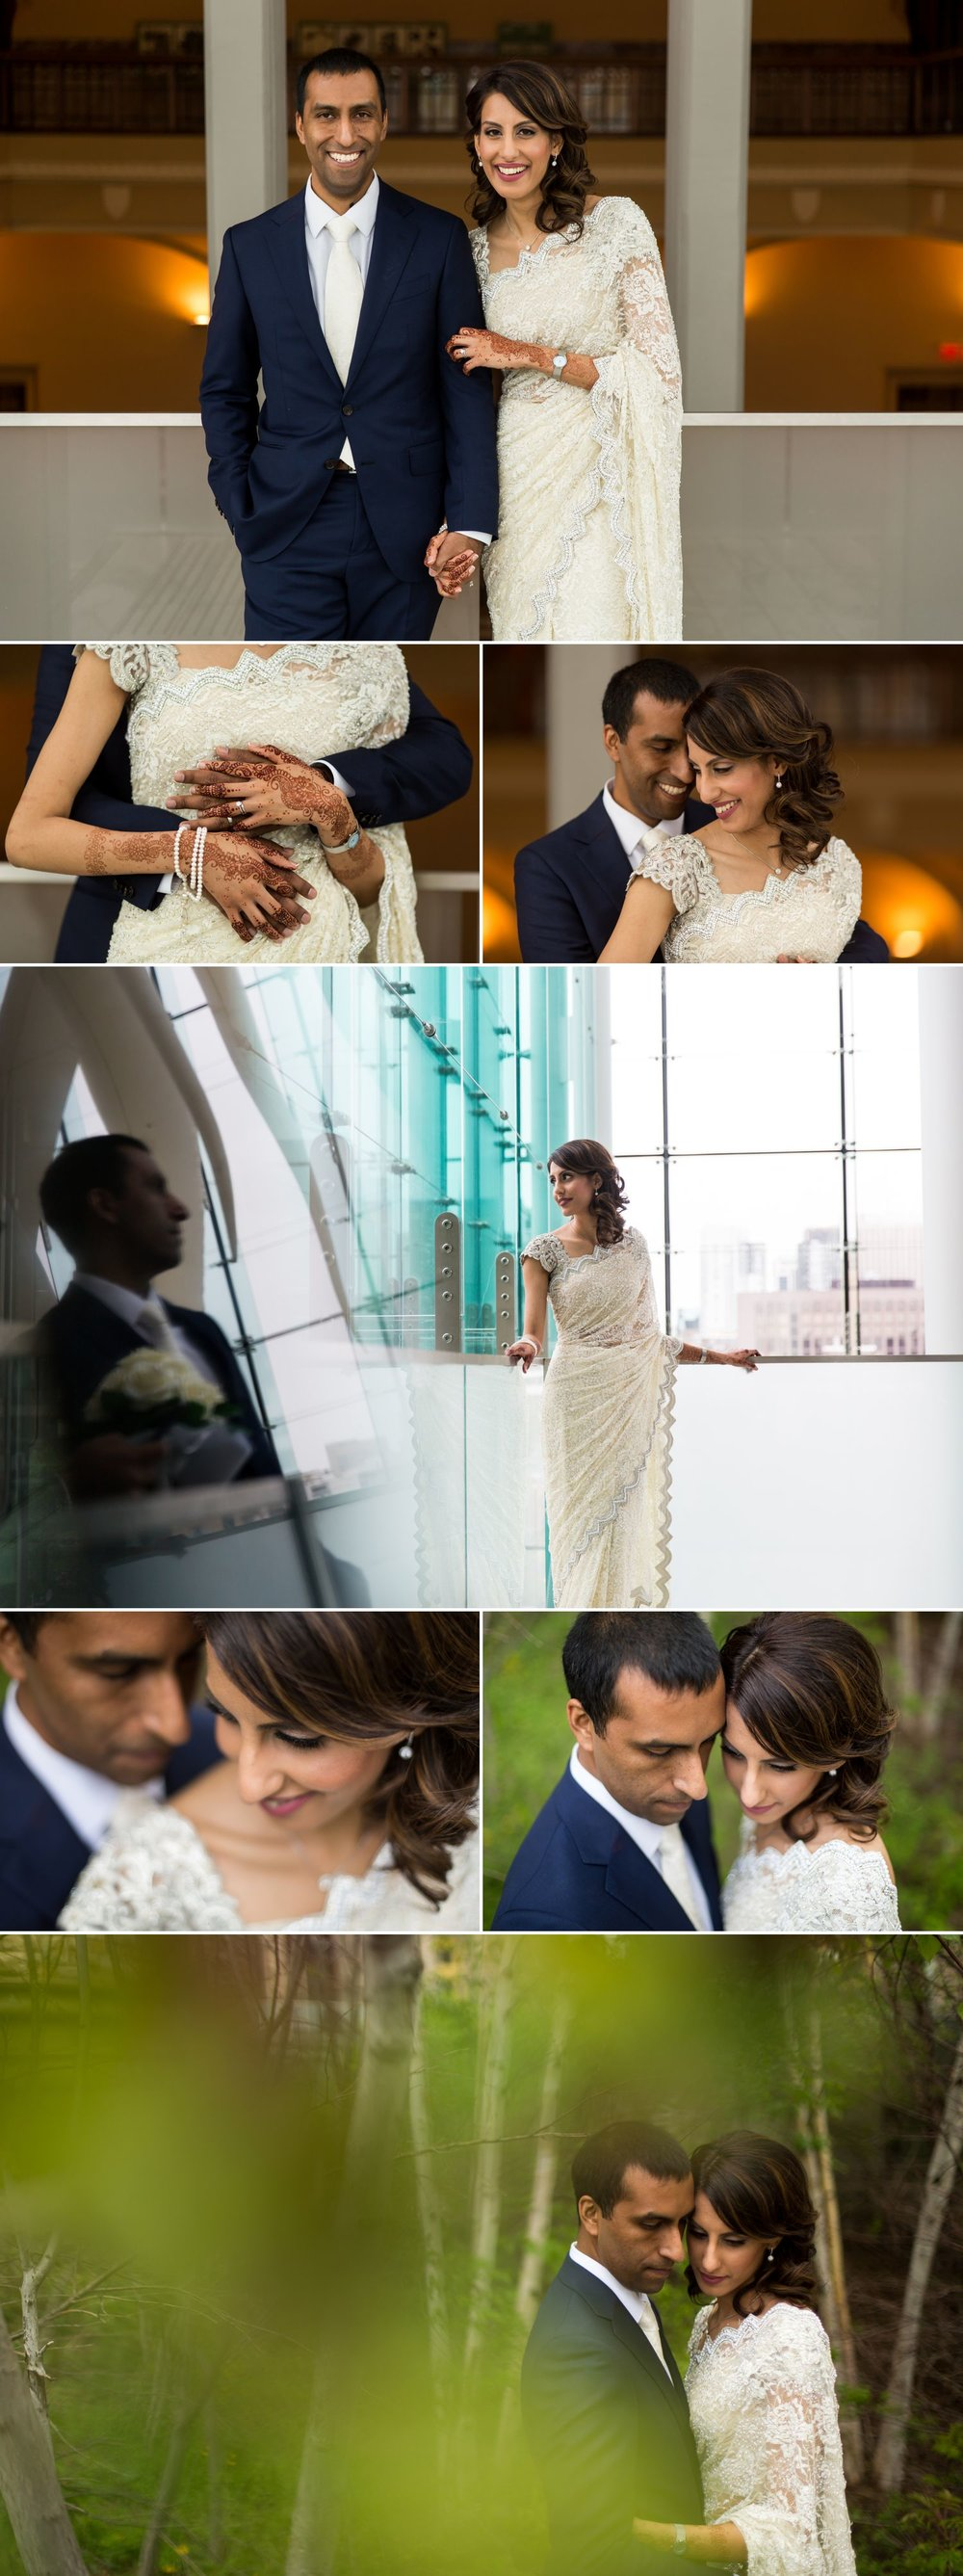 Portraits of the bride and groom at The Museum of Nature